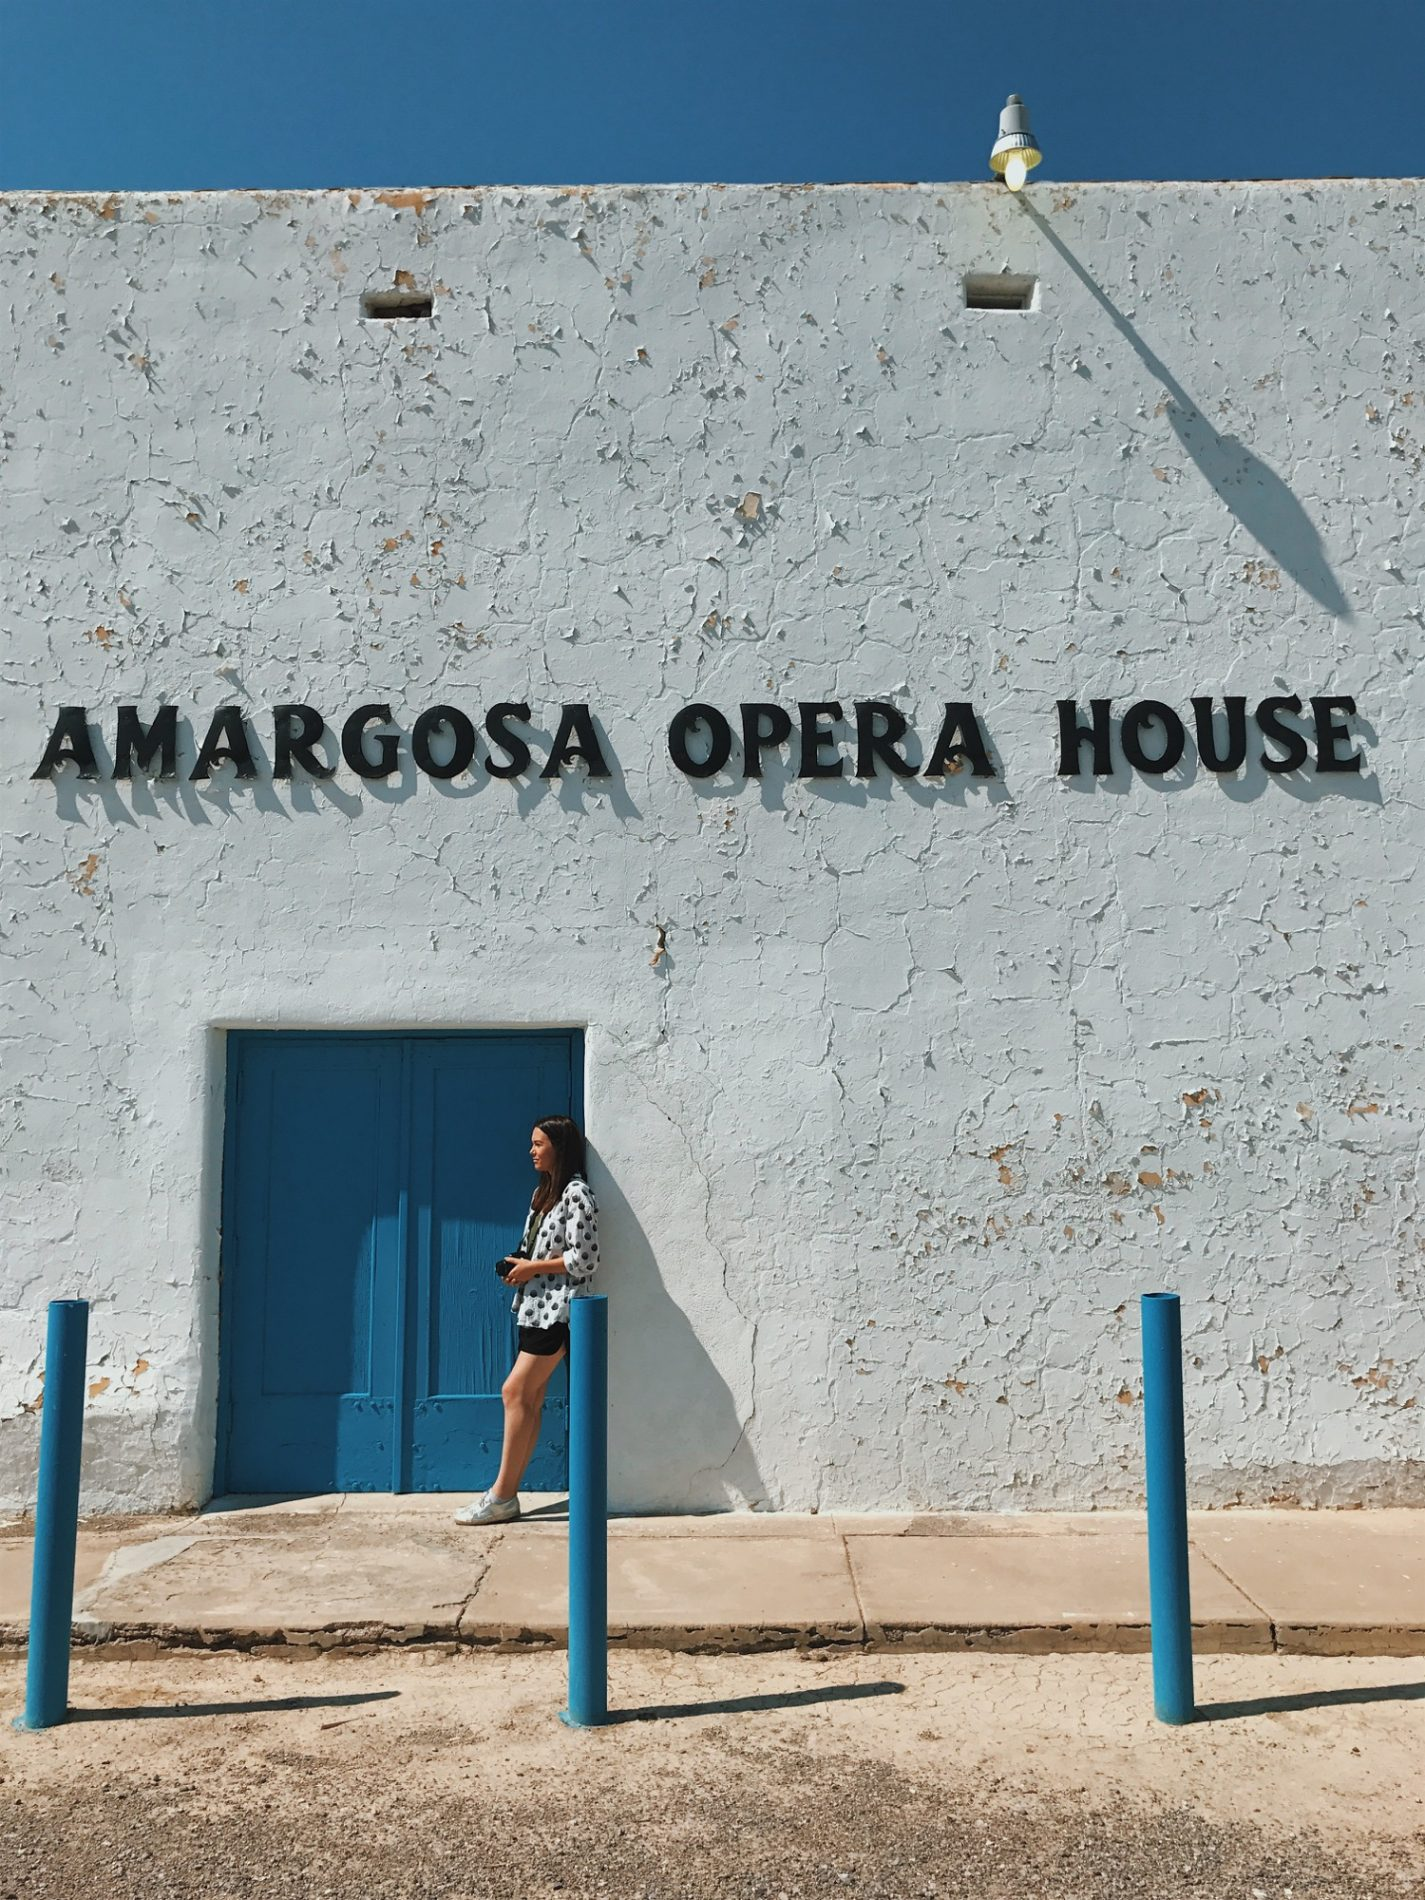 USA road trip, desert road trip, road trip itinerary, USA travel, travel ideas, amargosa opera house